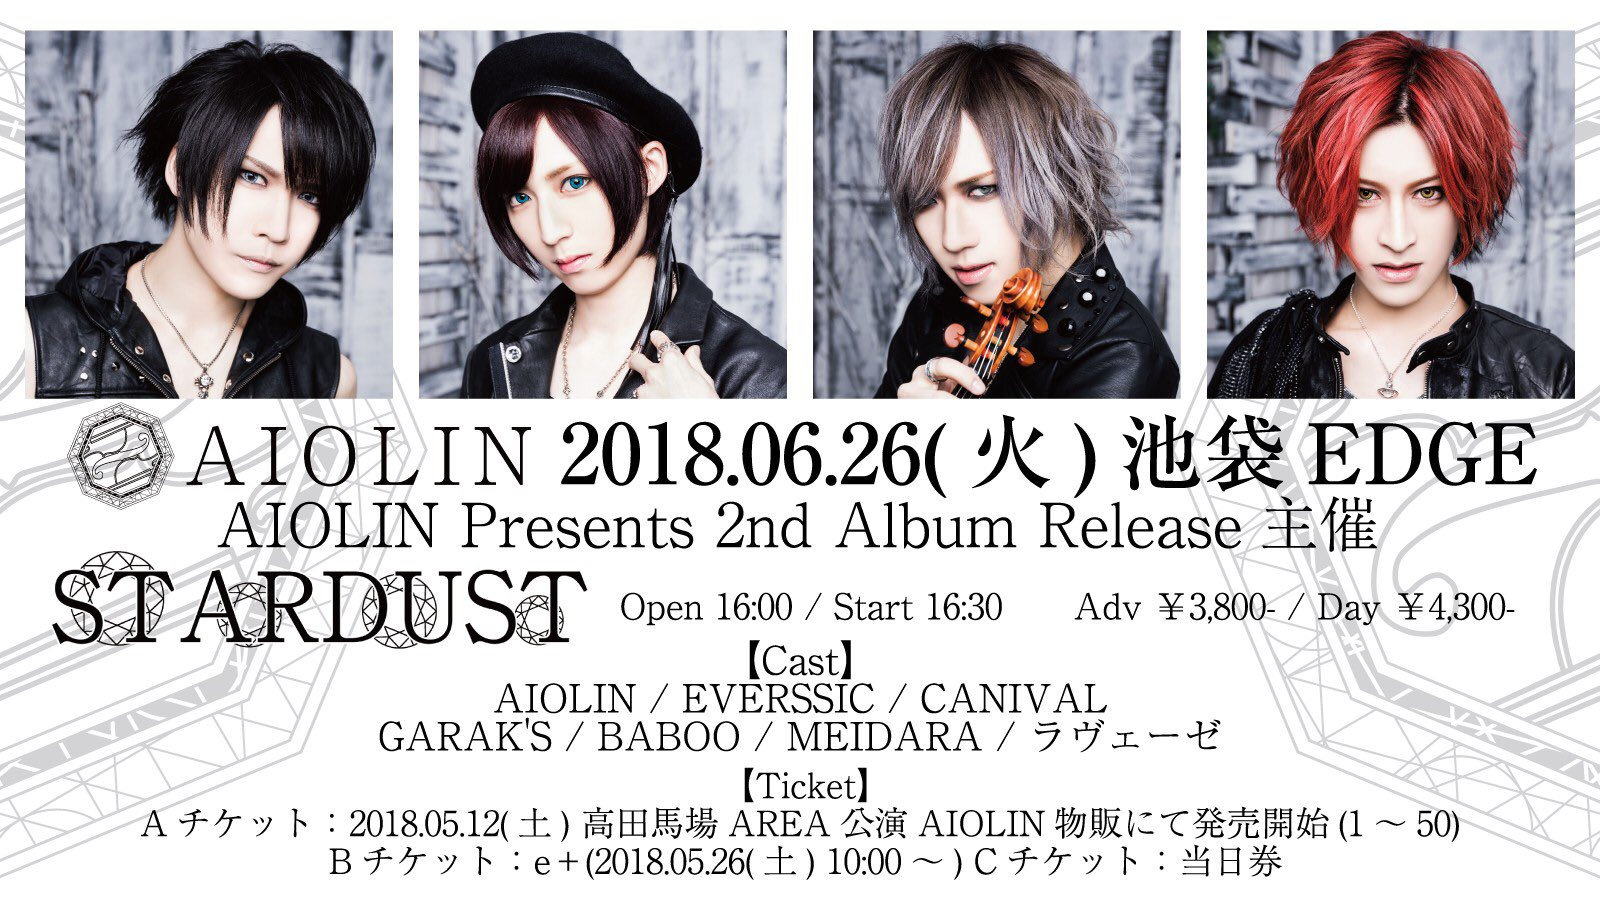 2018/06/26 AIOLIN 2nd Album Release主催 「STARDUST」情報解禁!